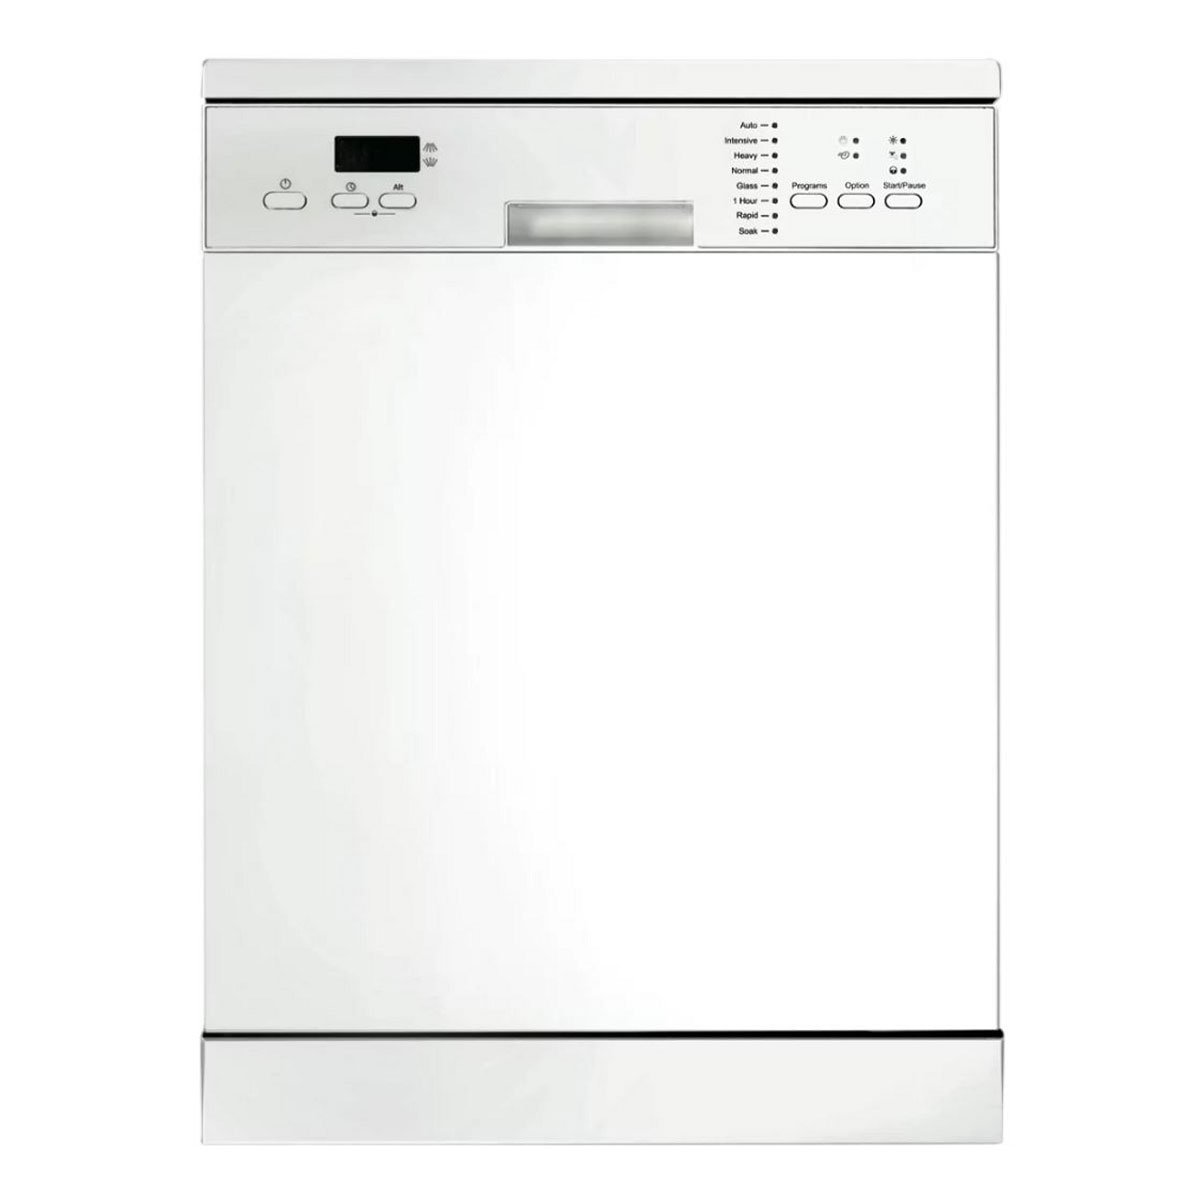 Delonghi DEDW645W Freestanding Dishwasher